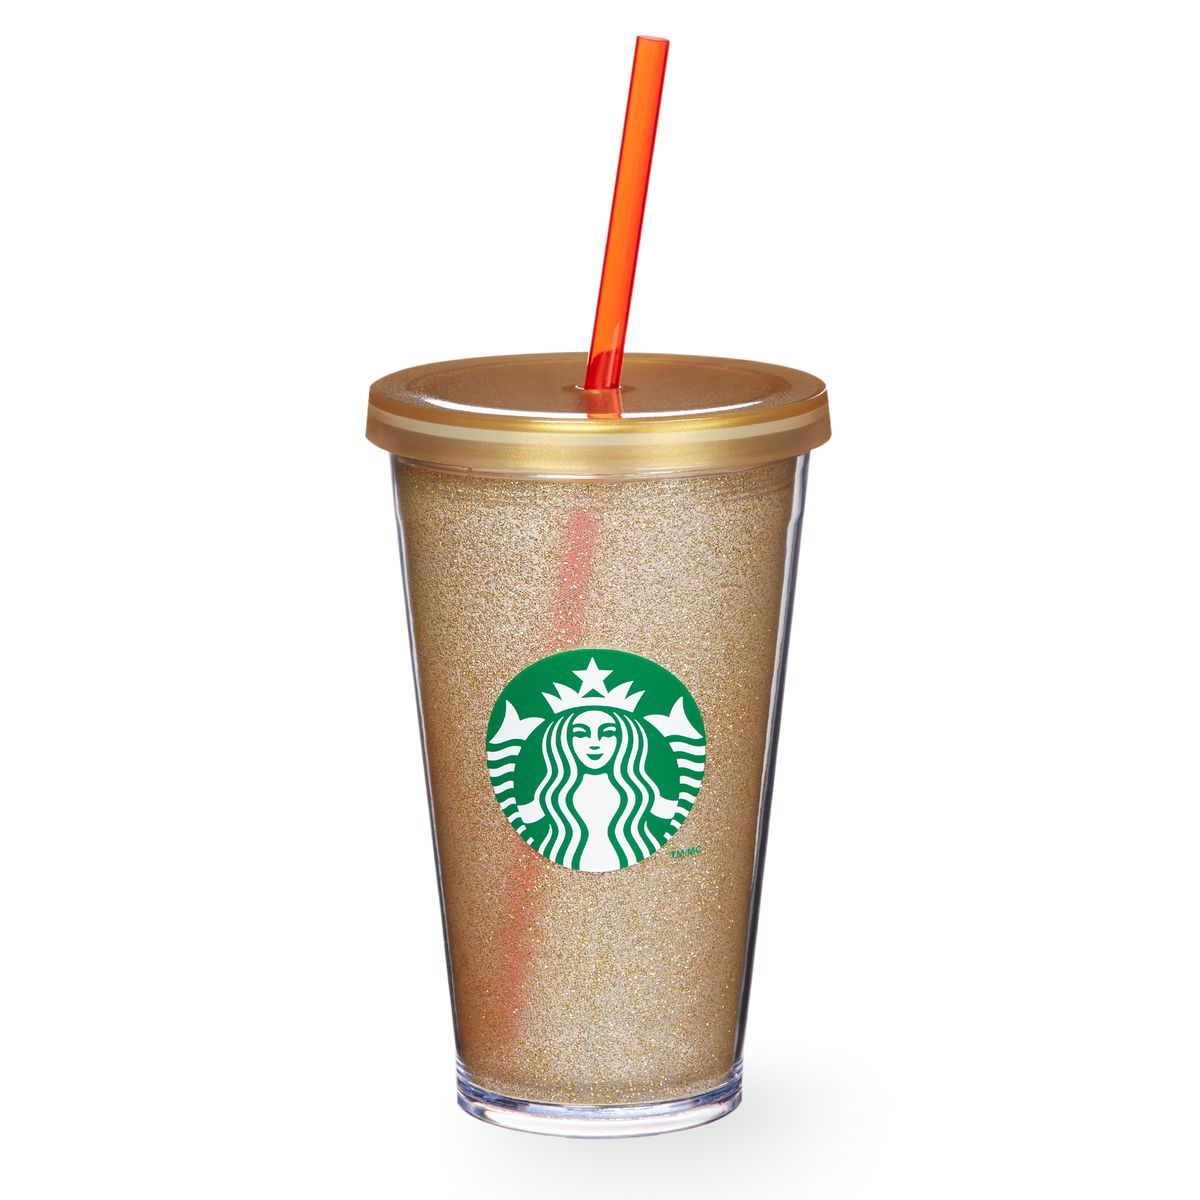 A Sturdy Grande Size Plastic Cold Cup With A Gradient Gold